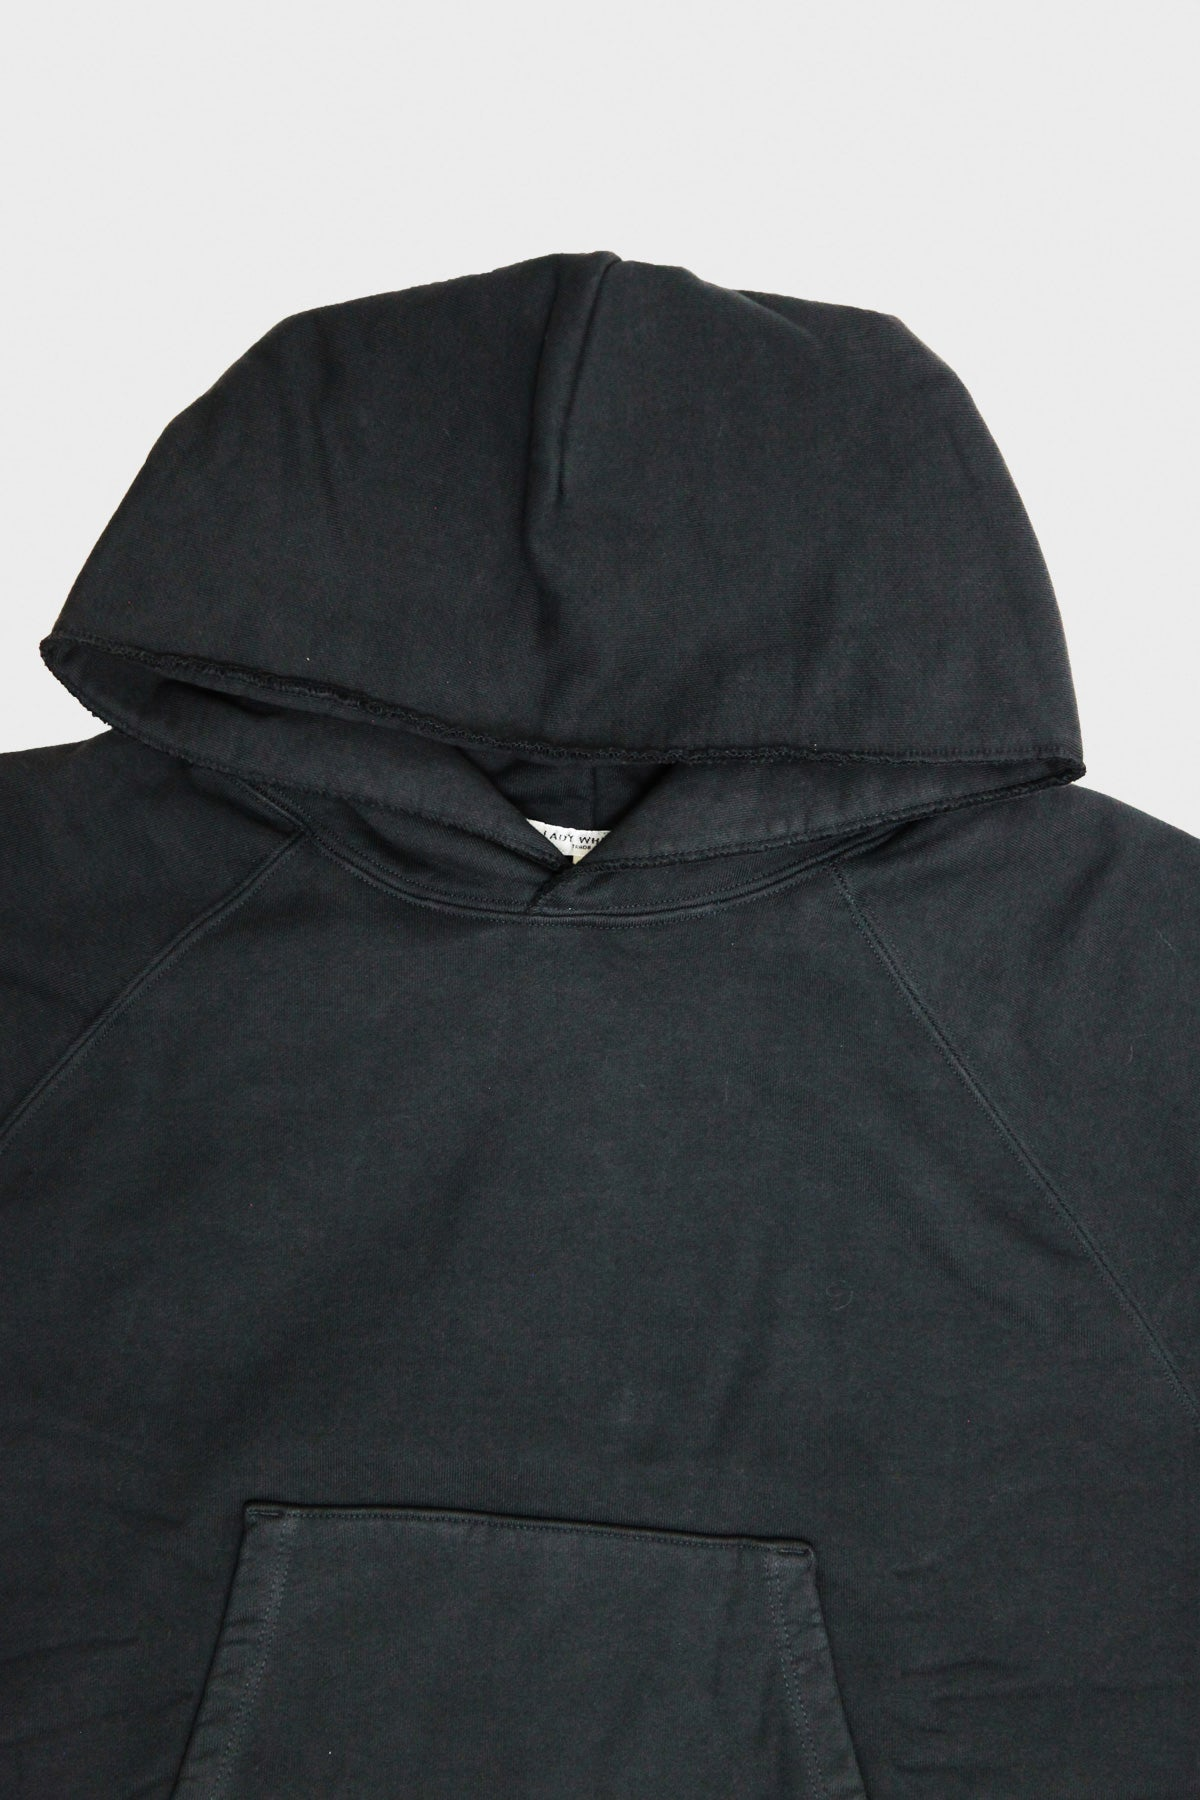 Lady White Co. - Super Weighted Hoodie - Faded Black - Canoe Club